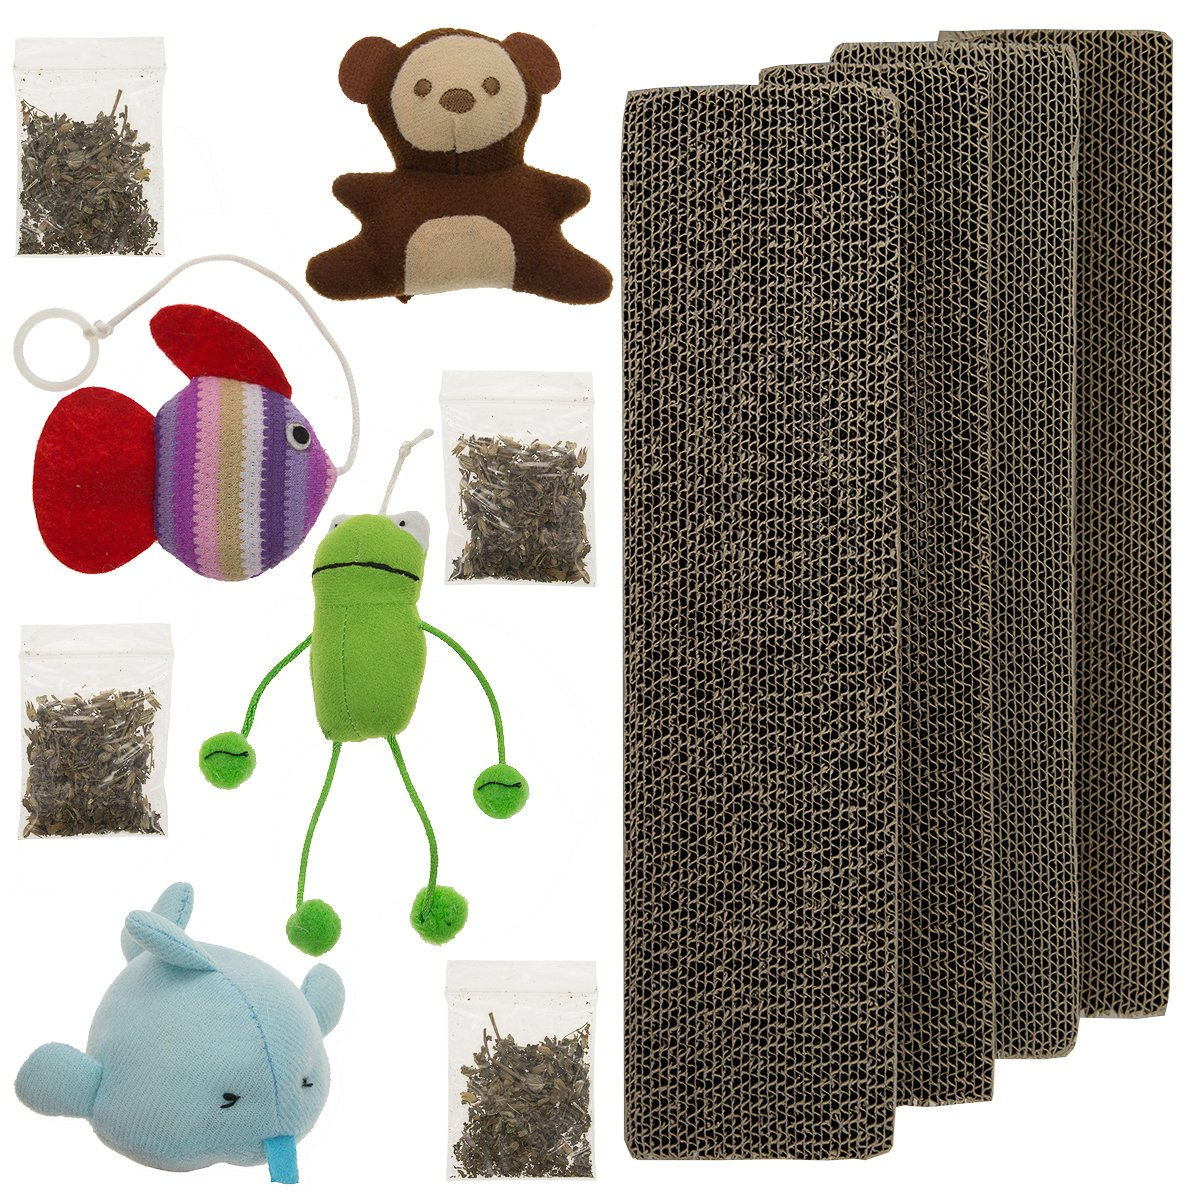 4 Master Paws Corrugated Cardboard Cat Scratching Post Refill Pads With Catnip & Set of Toys